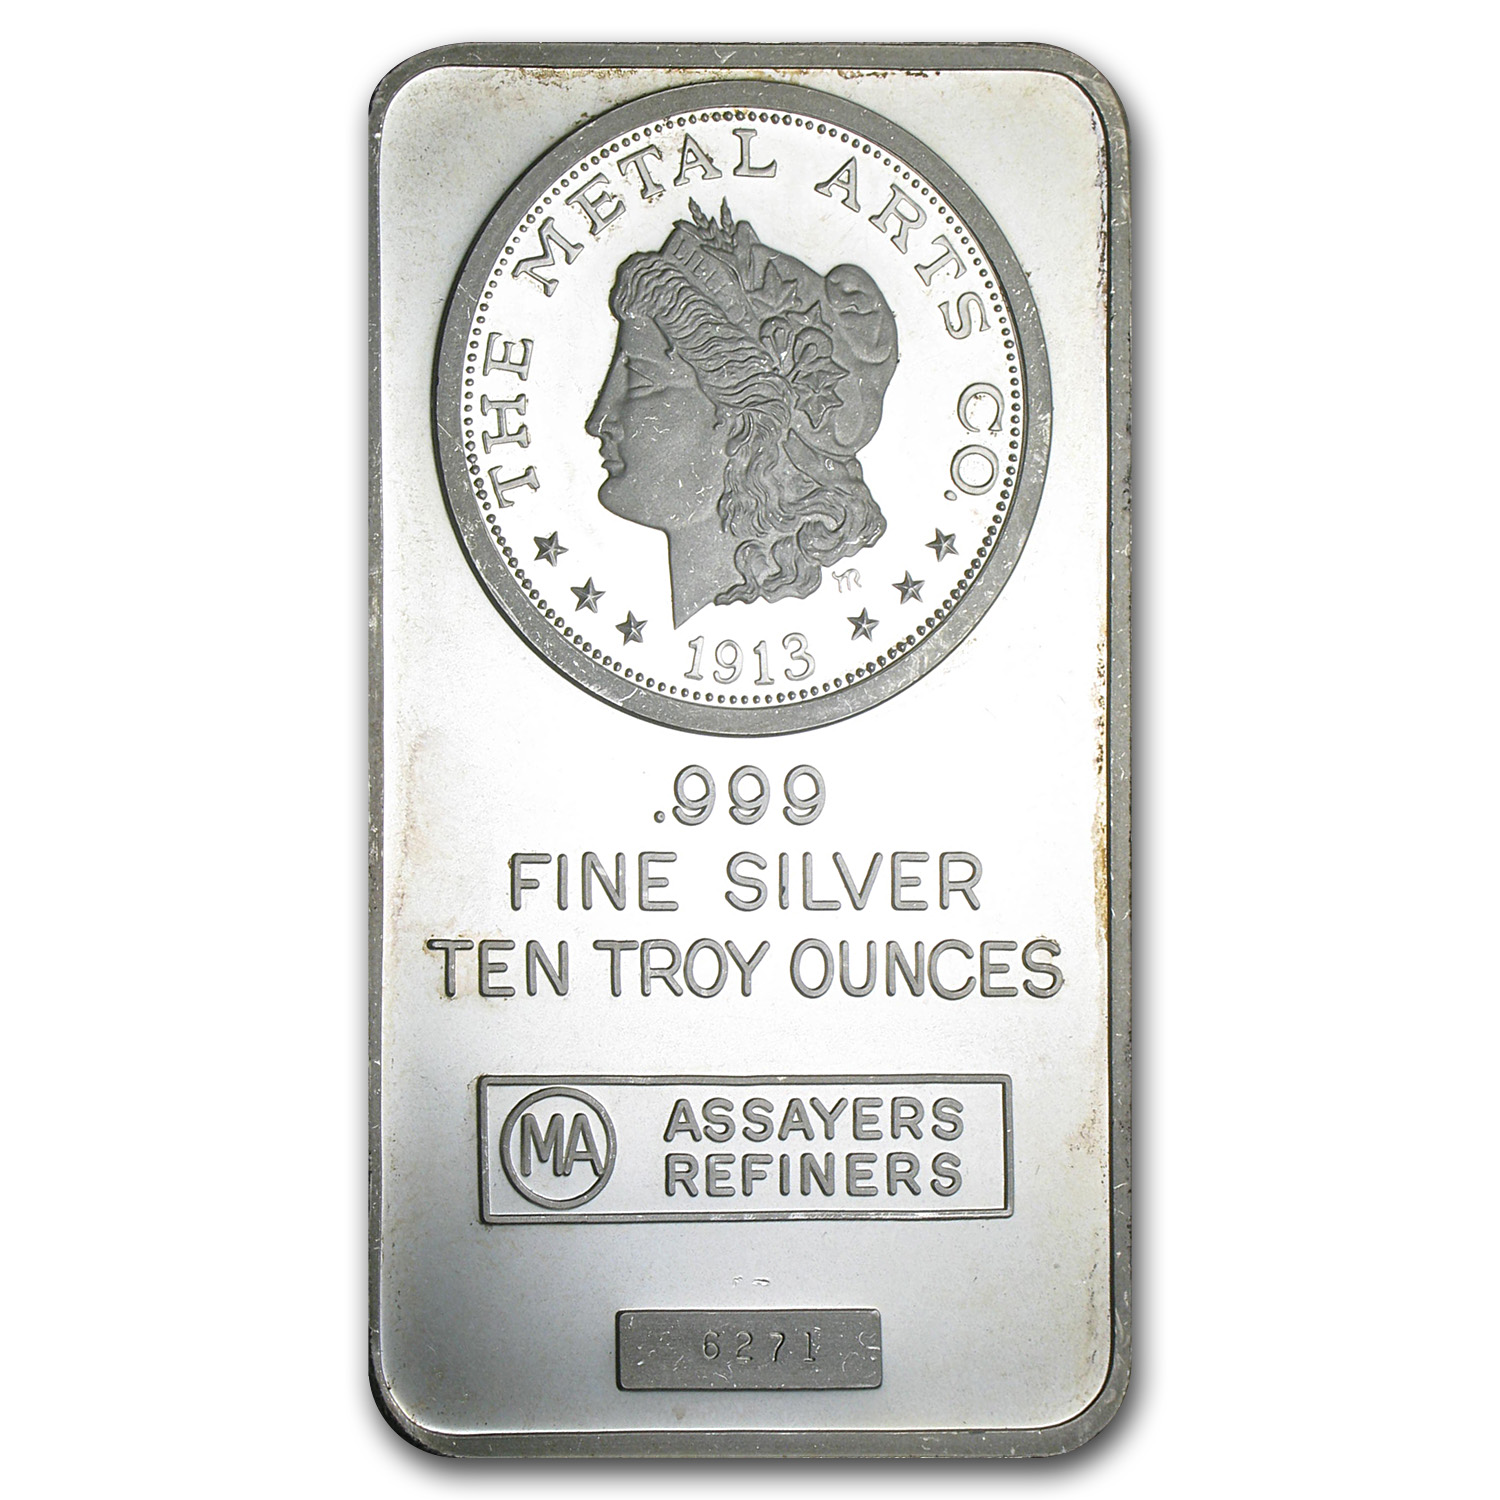 10 oz Silver Bar - Morgan (Metal Arts Co.)